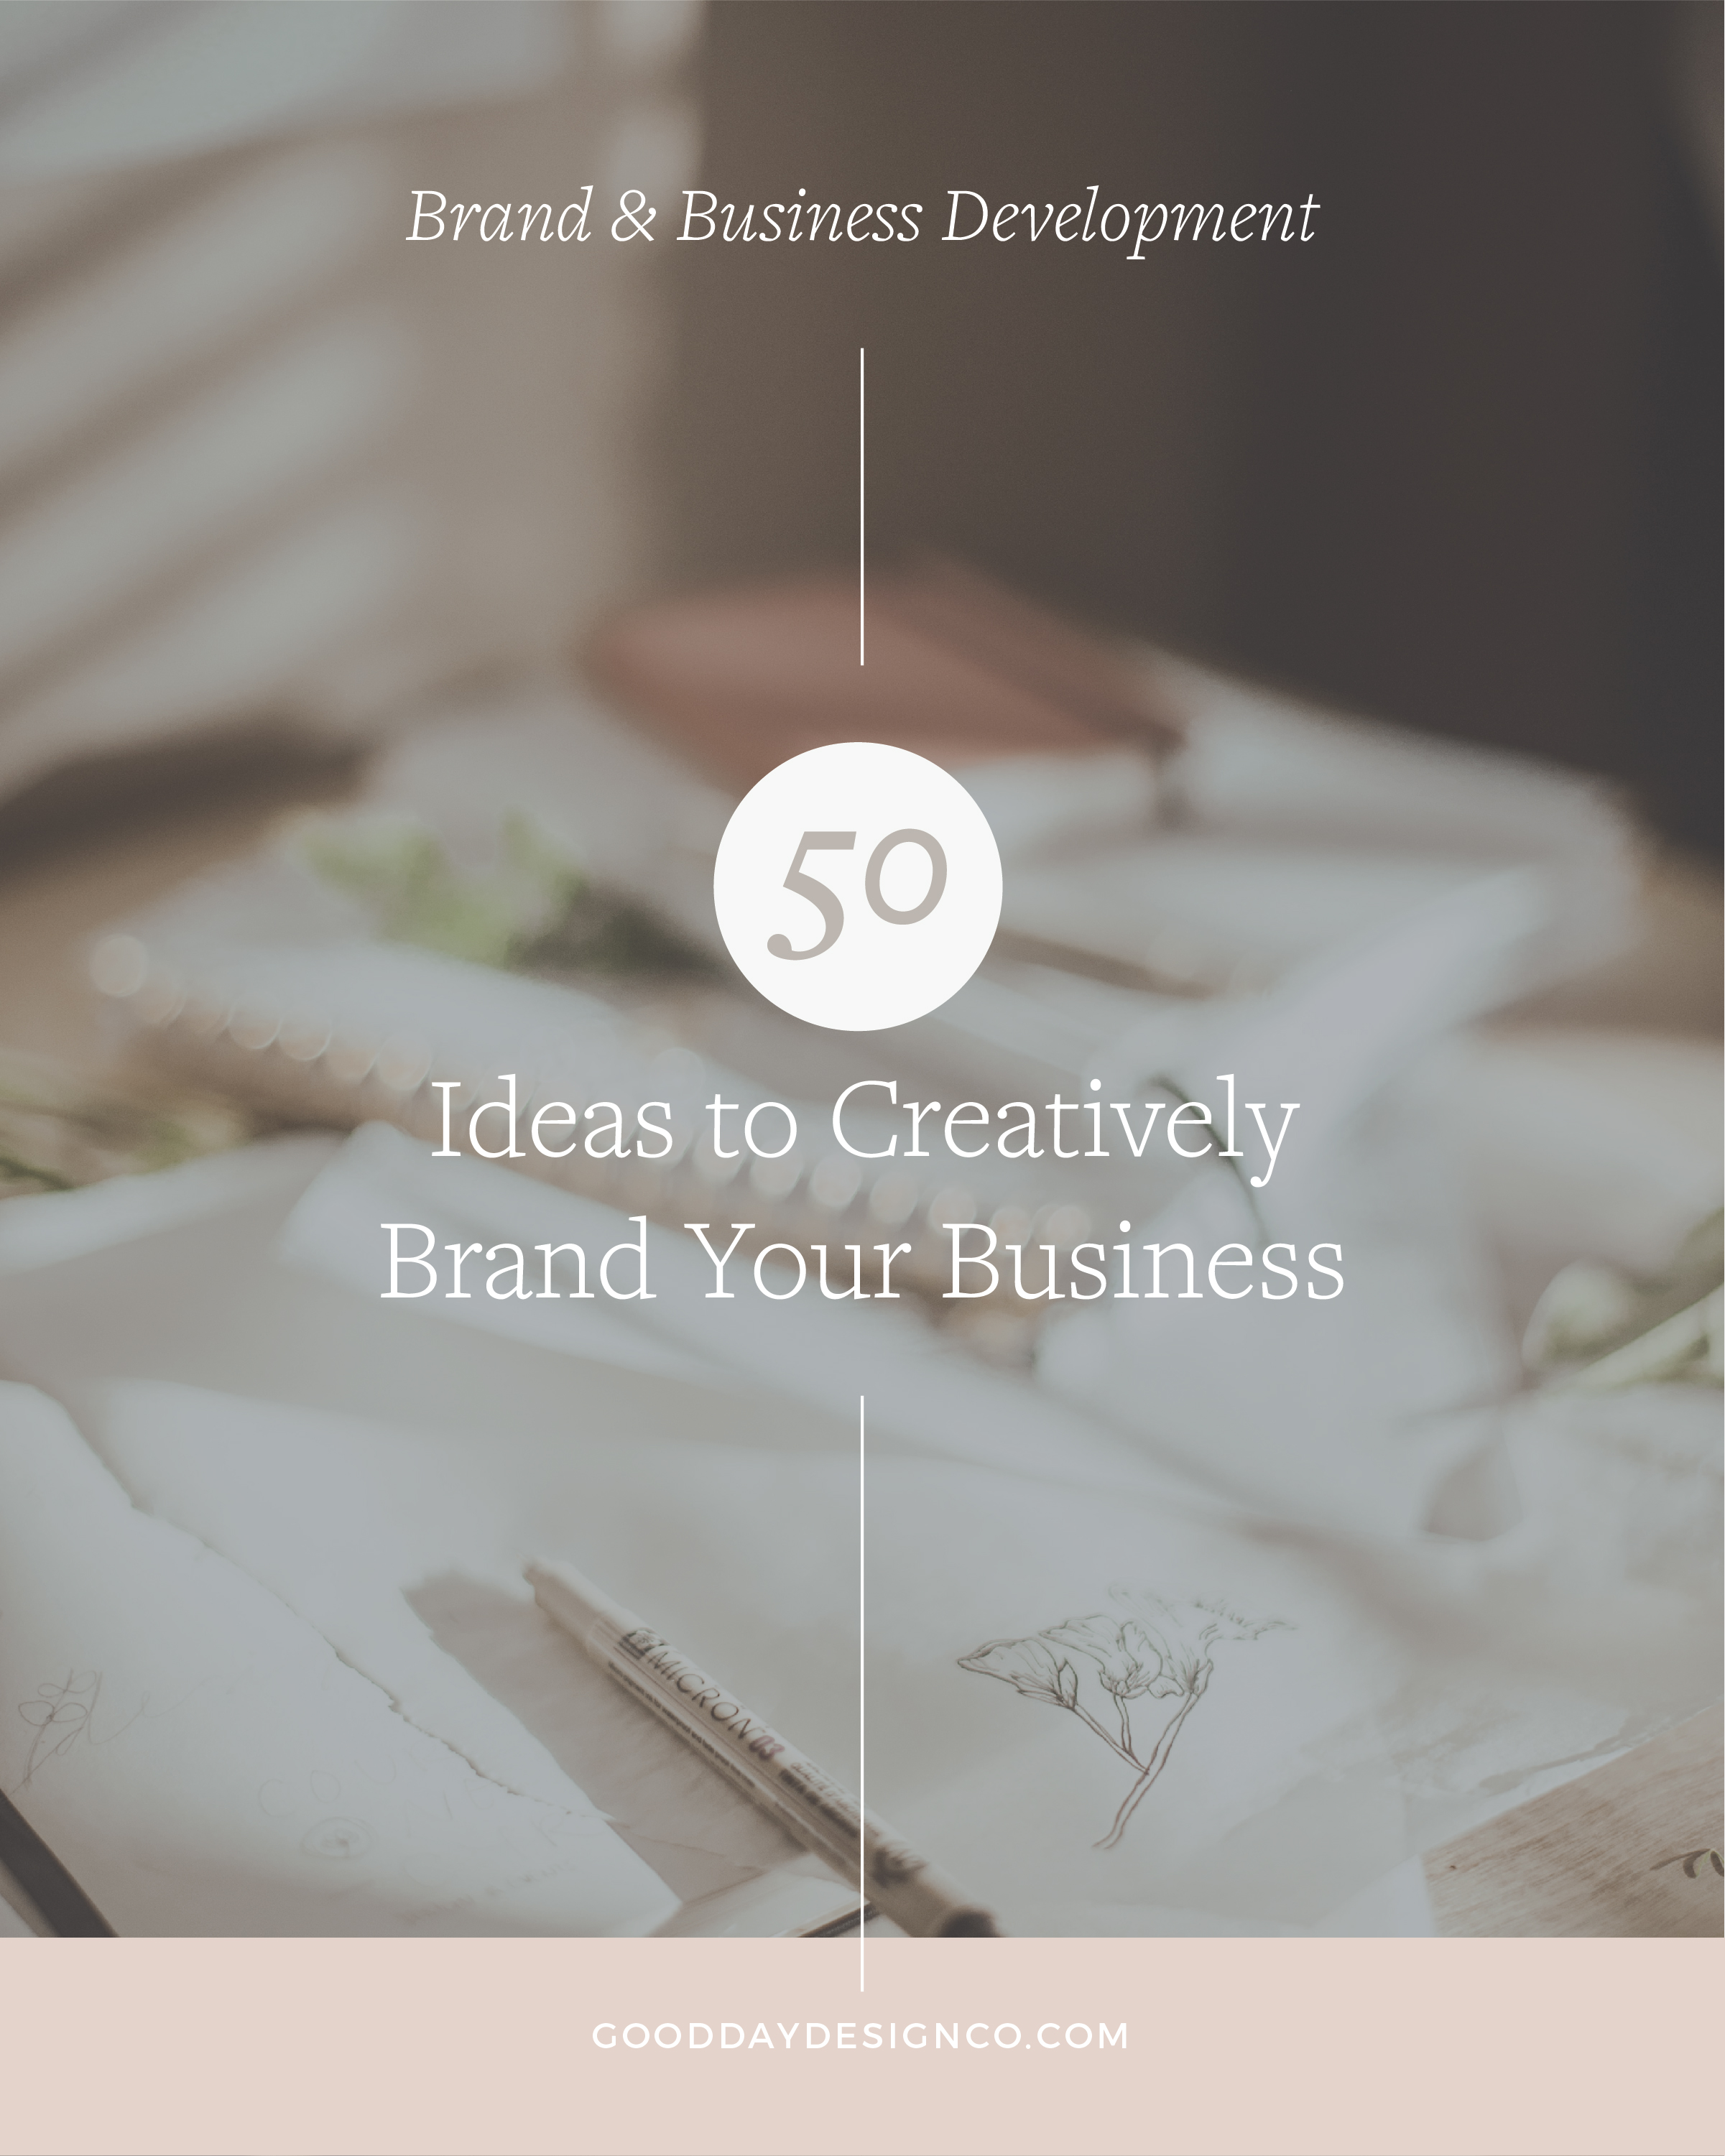 Creative Branding Ideas - Good Day Design Co-15.jpg